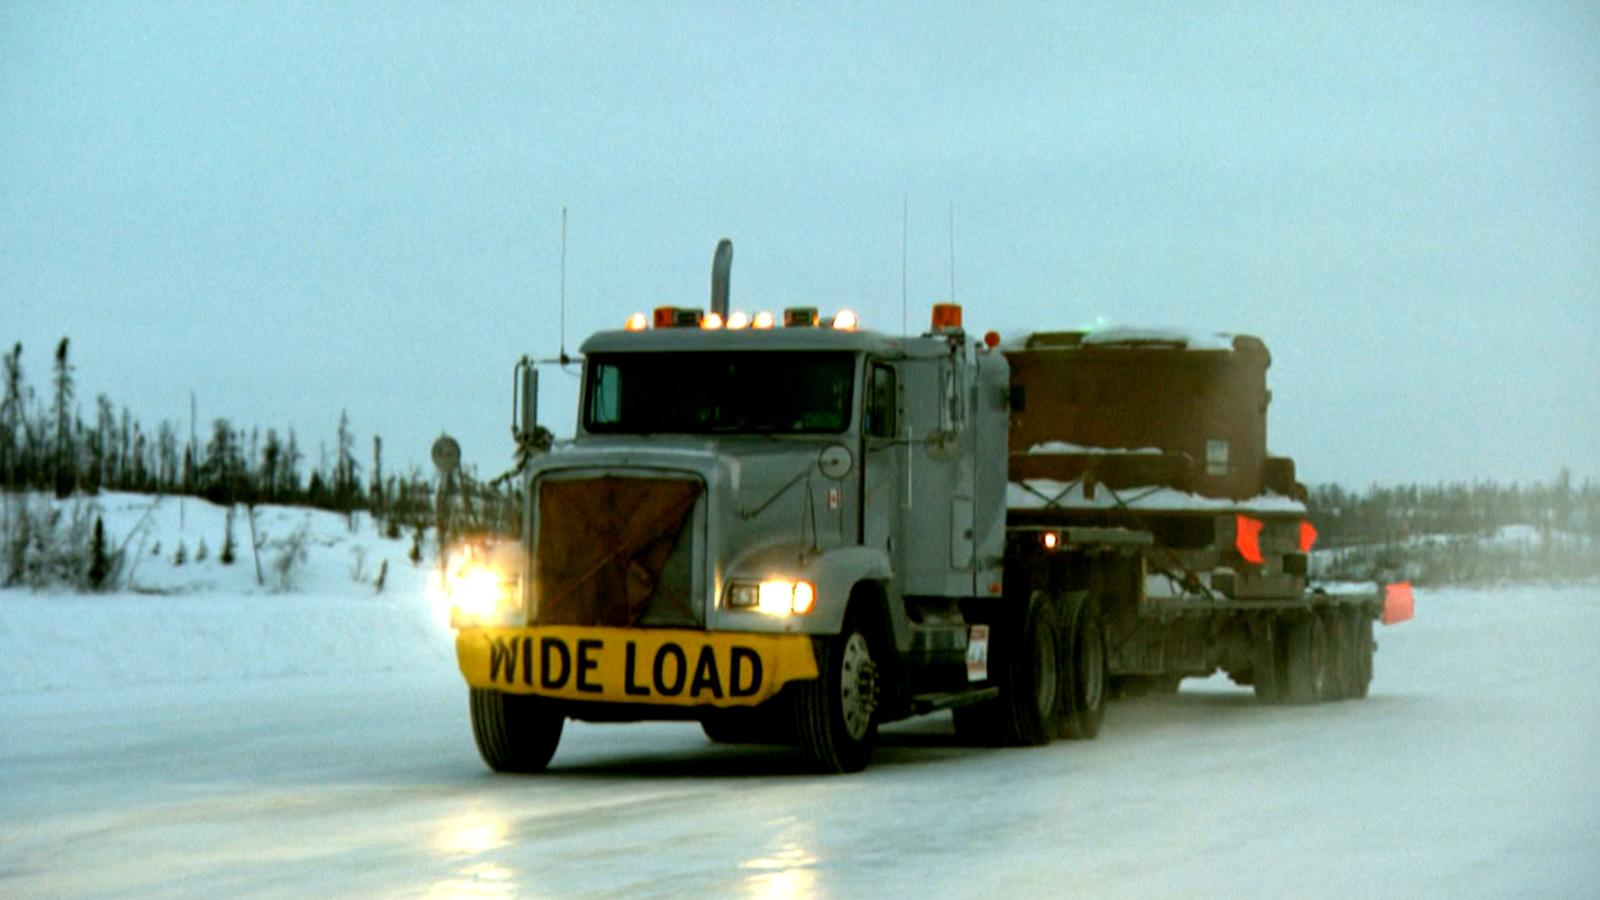 Ice Road Truckers Dave Channel Последние твиты от mr nightmare (@mista_nightmare). ice road truckers dave channel